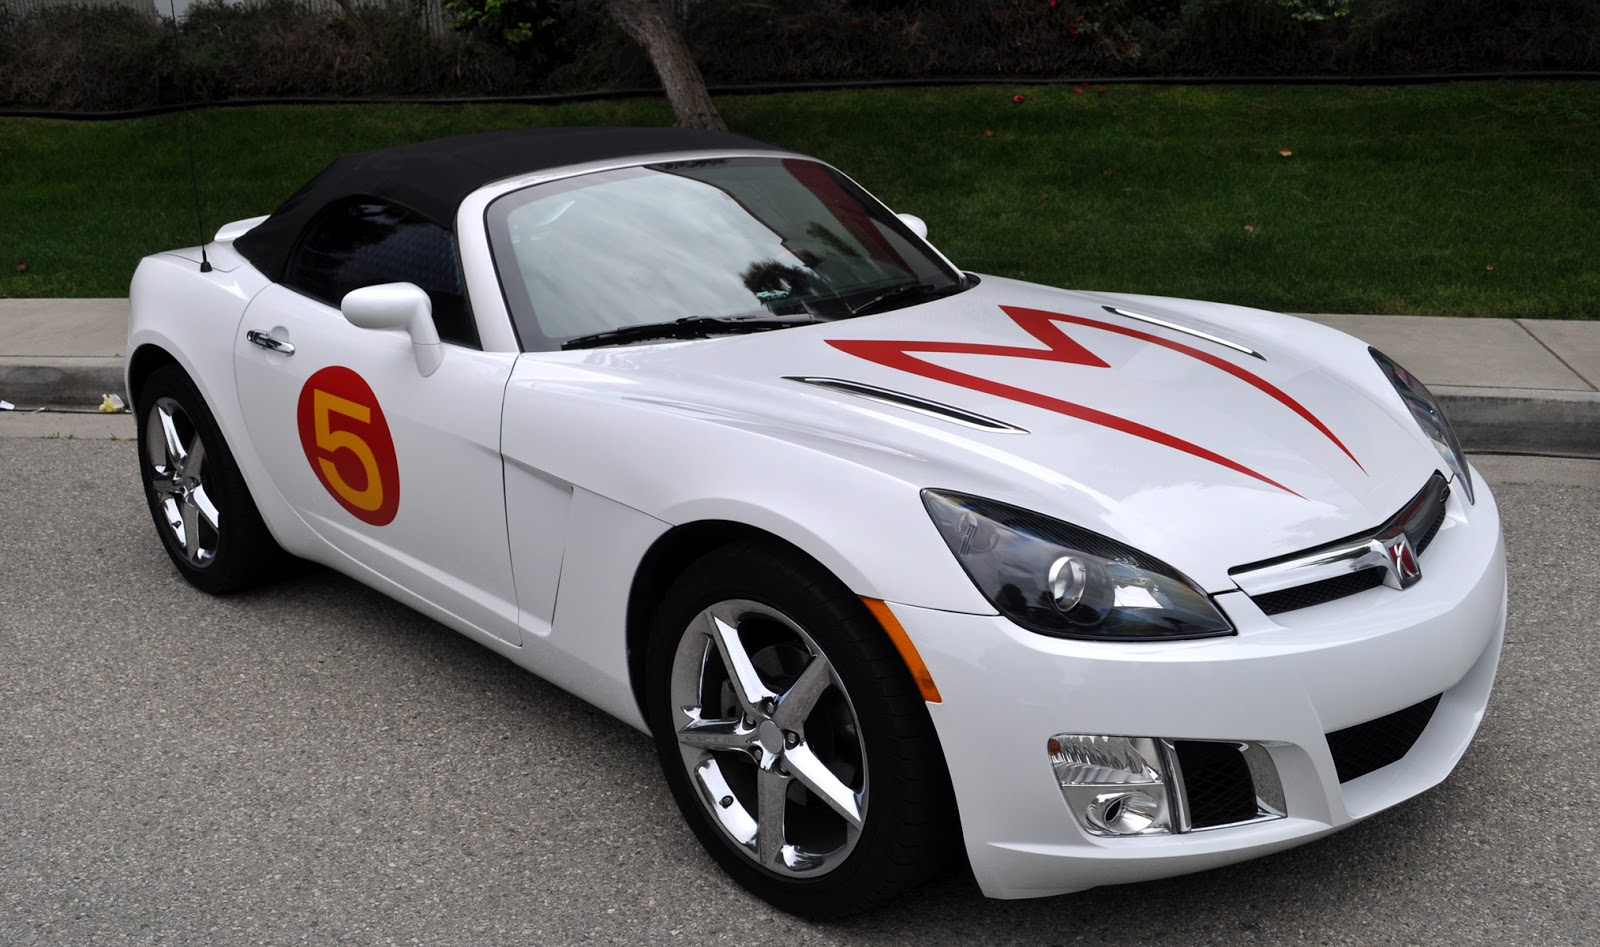 Cool Idea, Put The Mach 5 Graphics On A White Car.